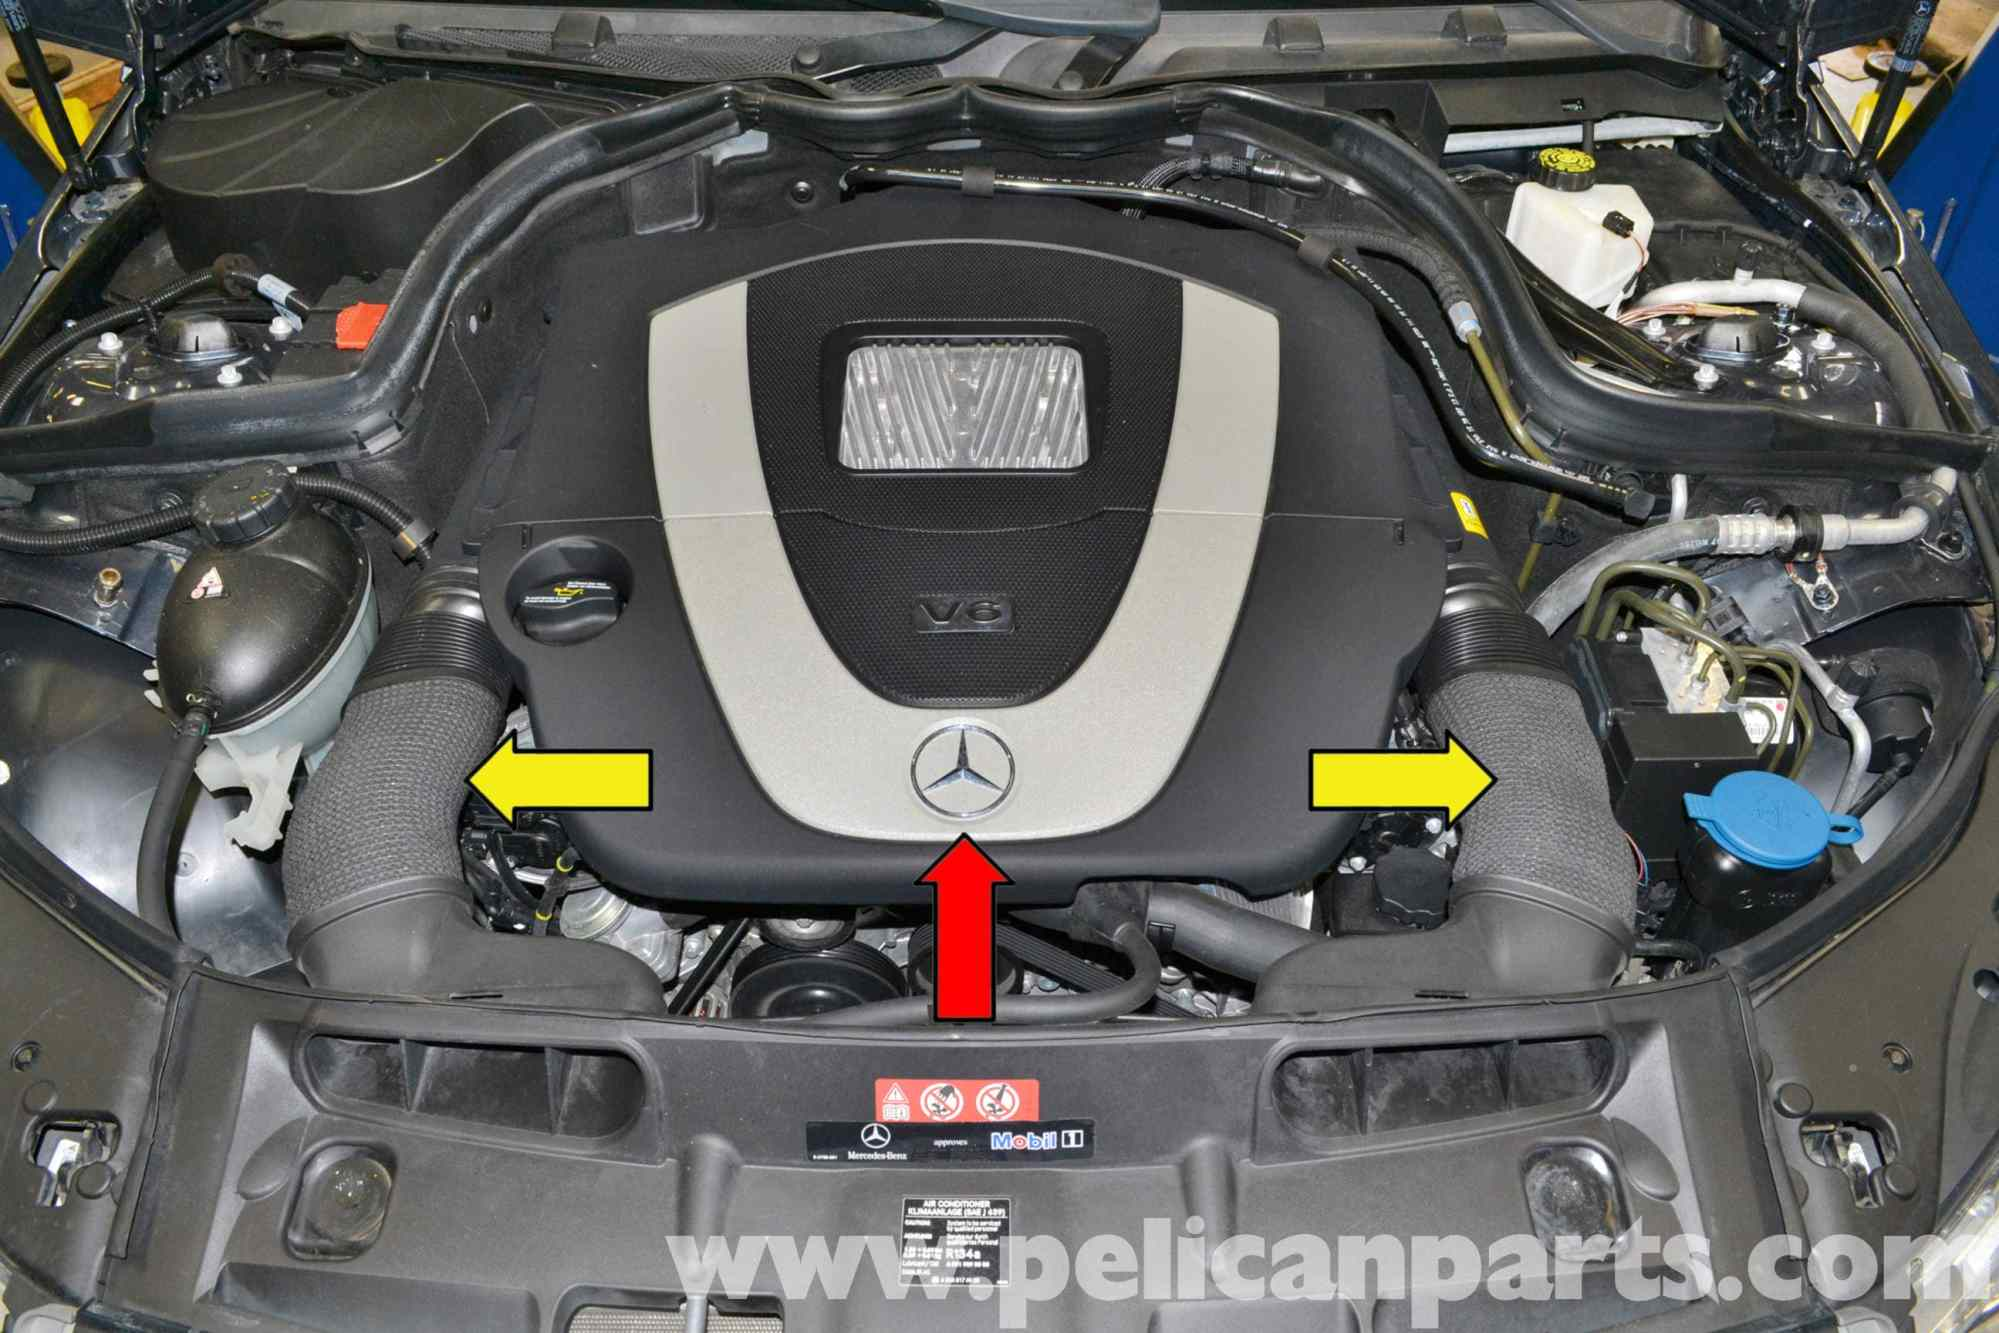 hight resolution of mercedes benz w204 camshaft position sensor replacement 2008 2014 mercedes engine fault codes list on mercedes c cl engine diagrams